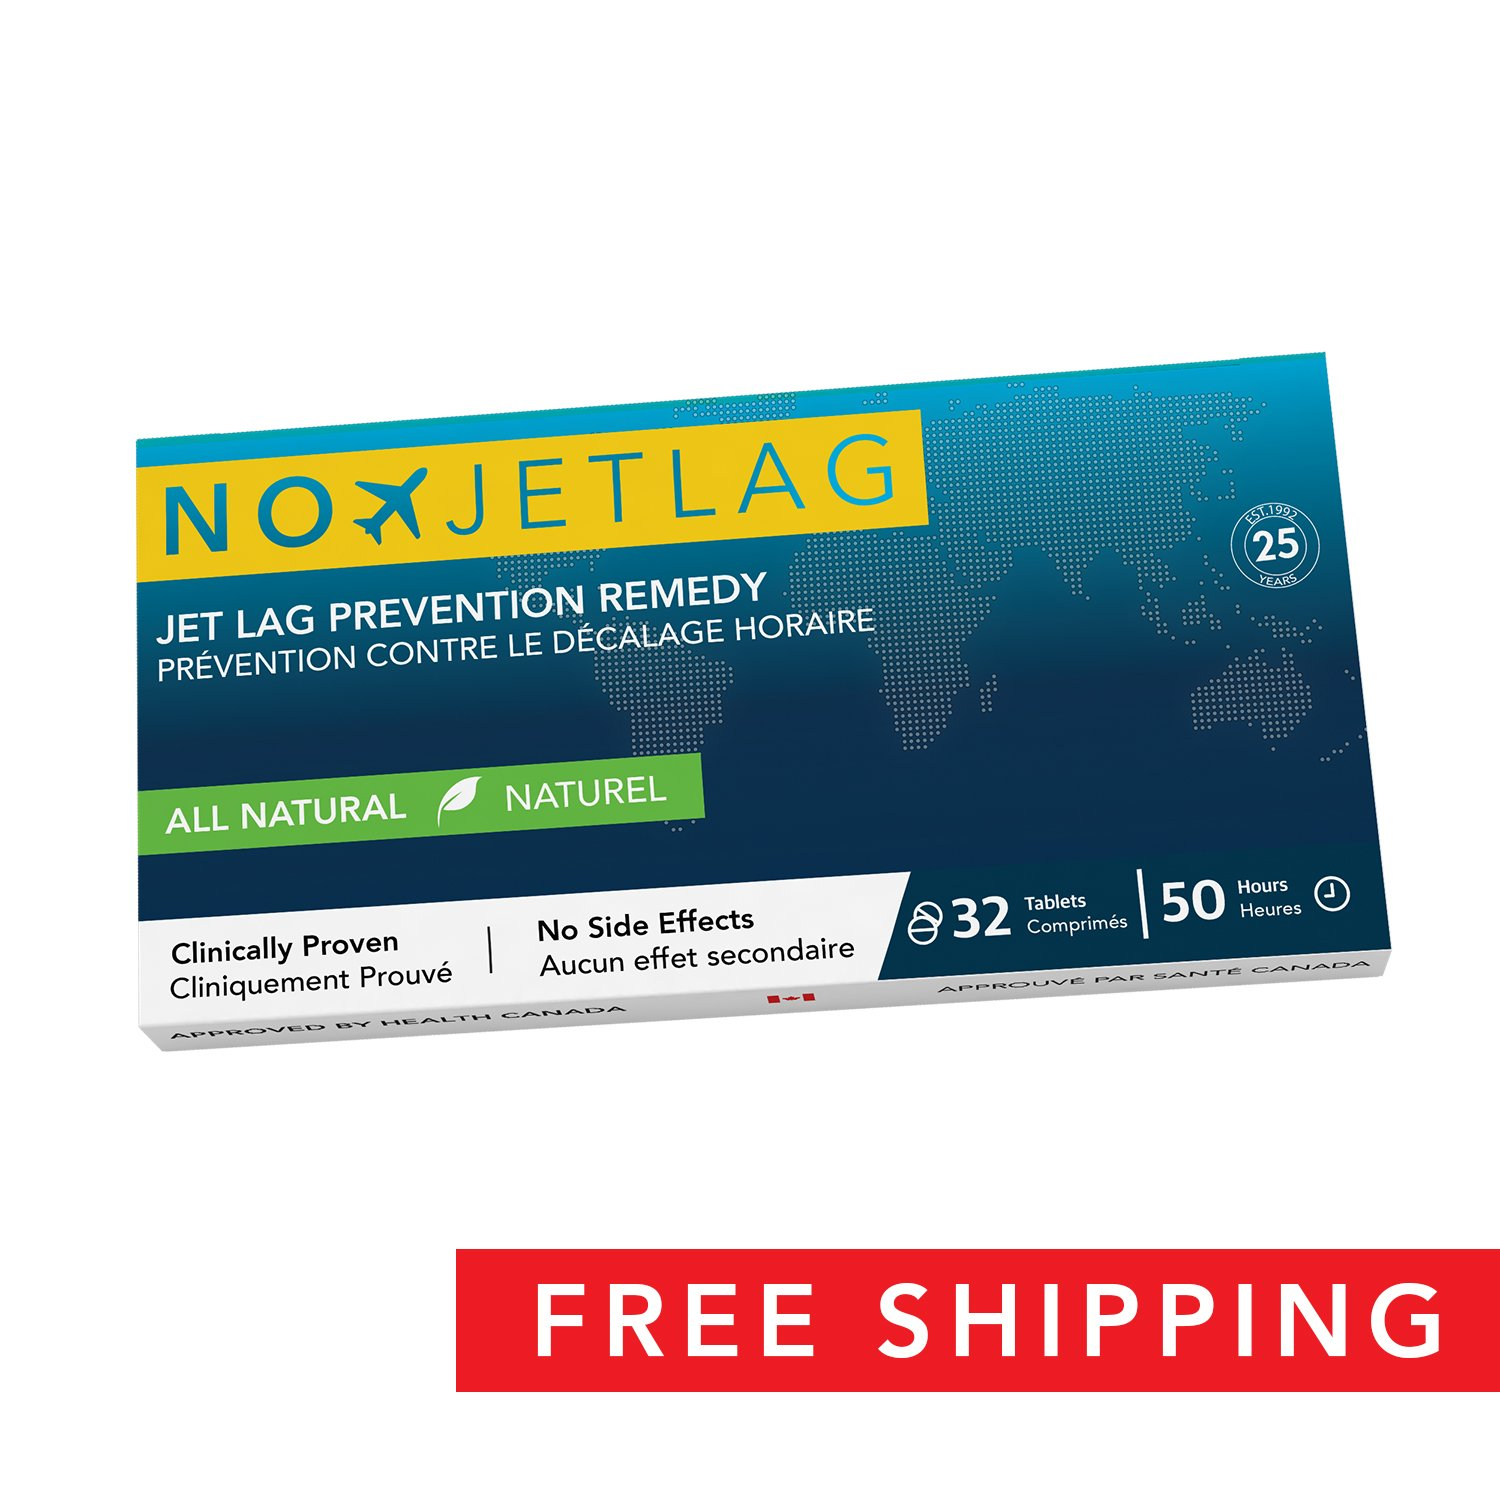 No Jet Lag Homeopathic Jet Lag (2018 Edition) - Jet Lag Prevention & Relief for Long Distance Flights   Fly Smarter   All Natural Supplement   Airplane Accessories   No Jet Lag   32 Tablets Included